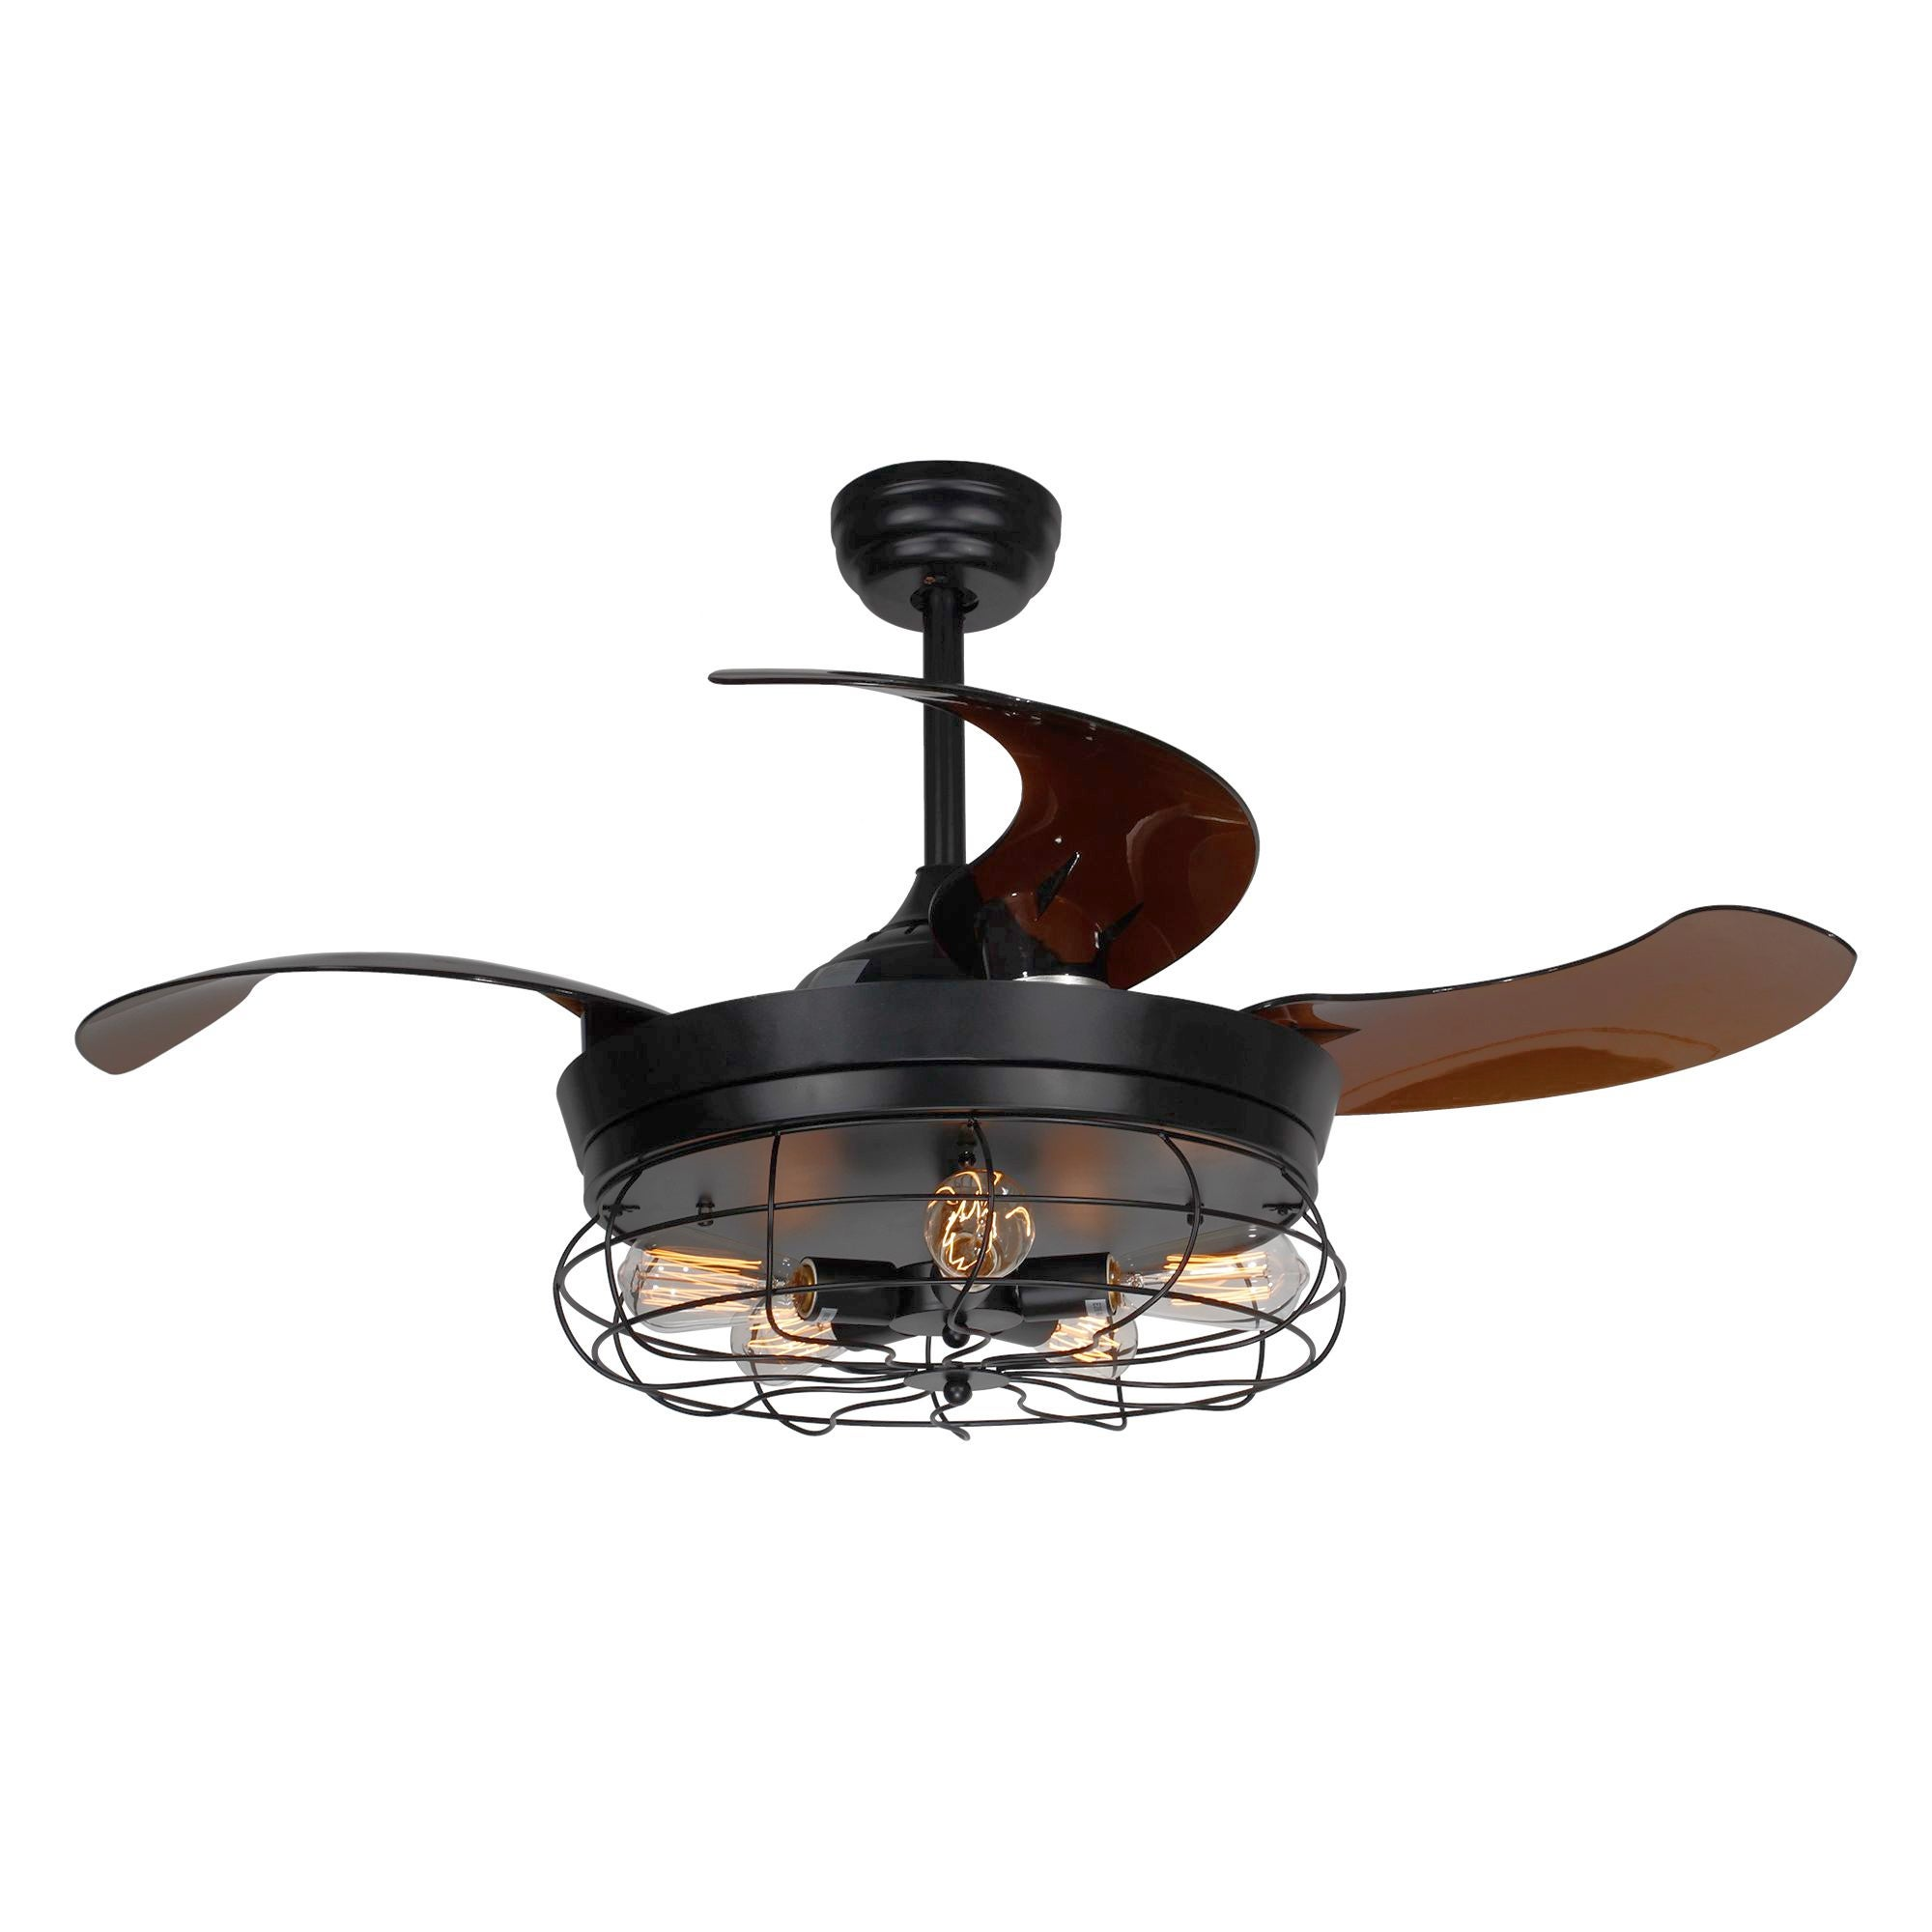 Shop Black Friday Deals On 46 Inch Industrial Foldable 4 Blades Cage Ceiling Fan With 5 Light Overstock 18915963 Black